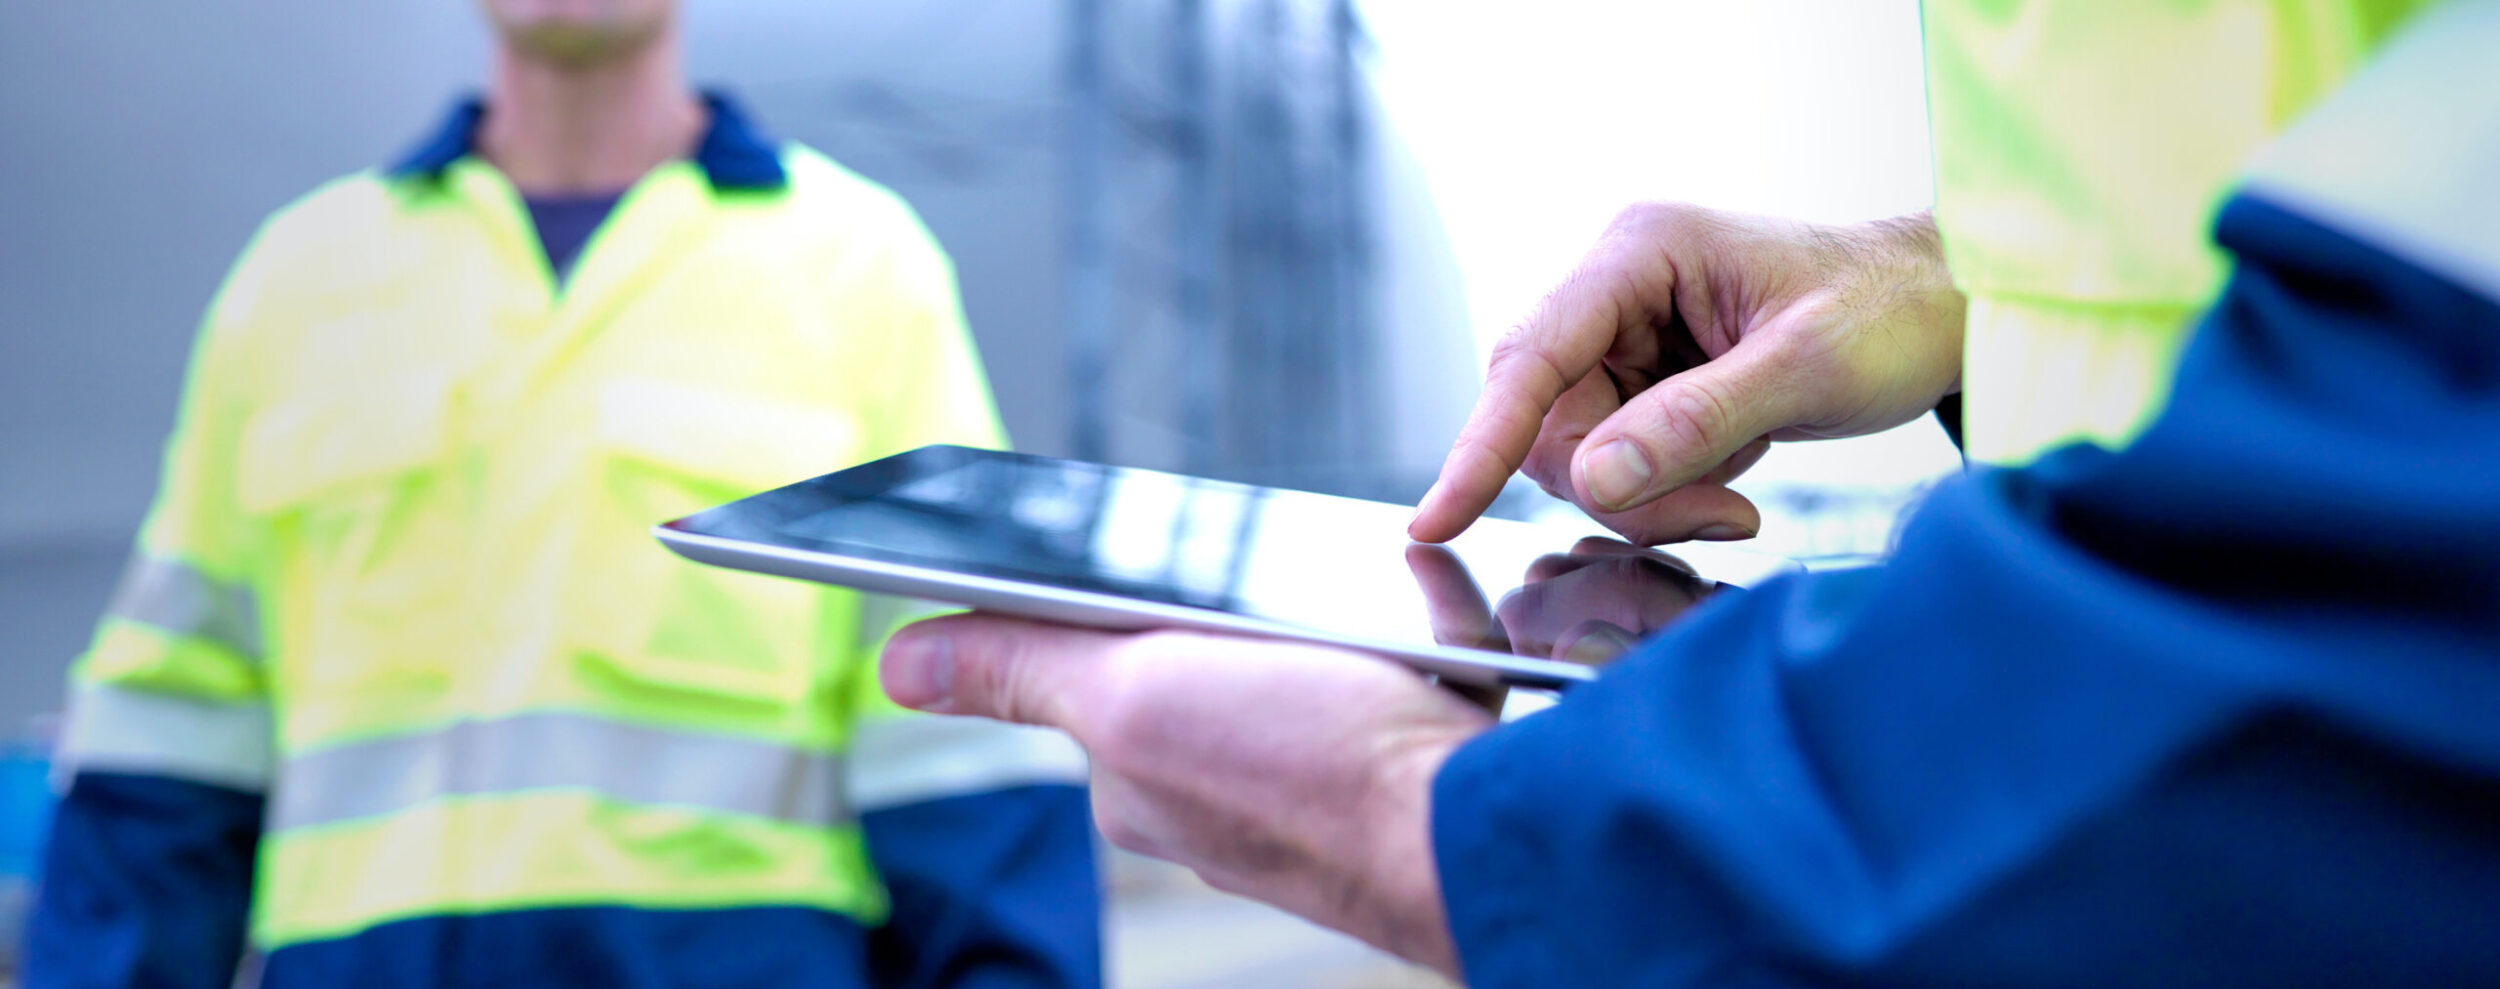 Facility employee holding tablet device